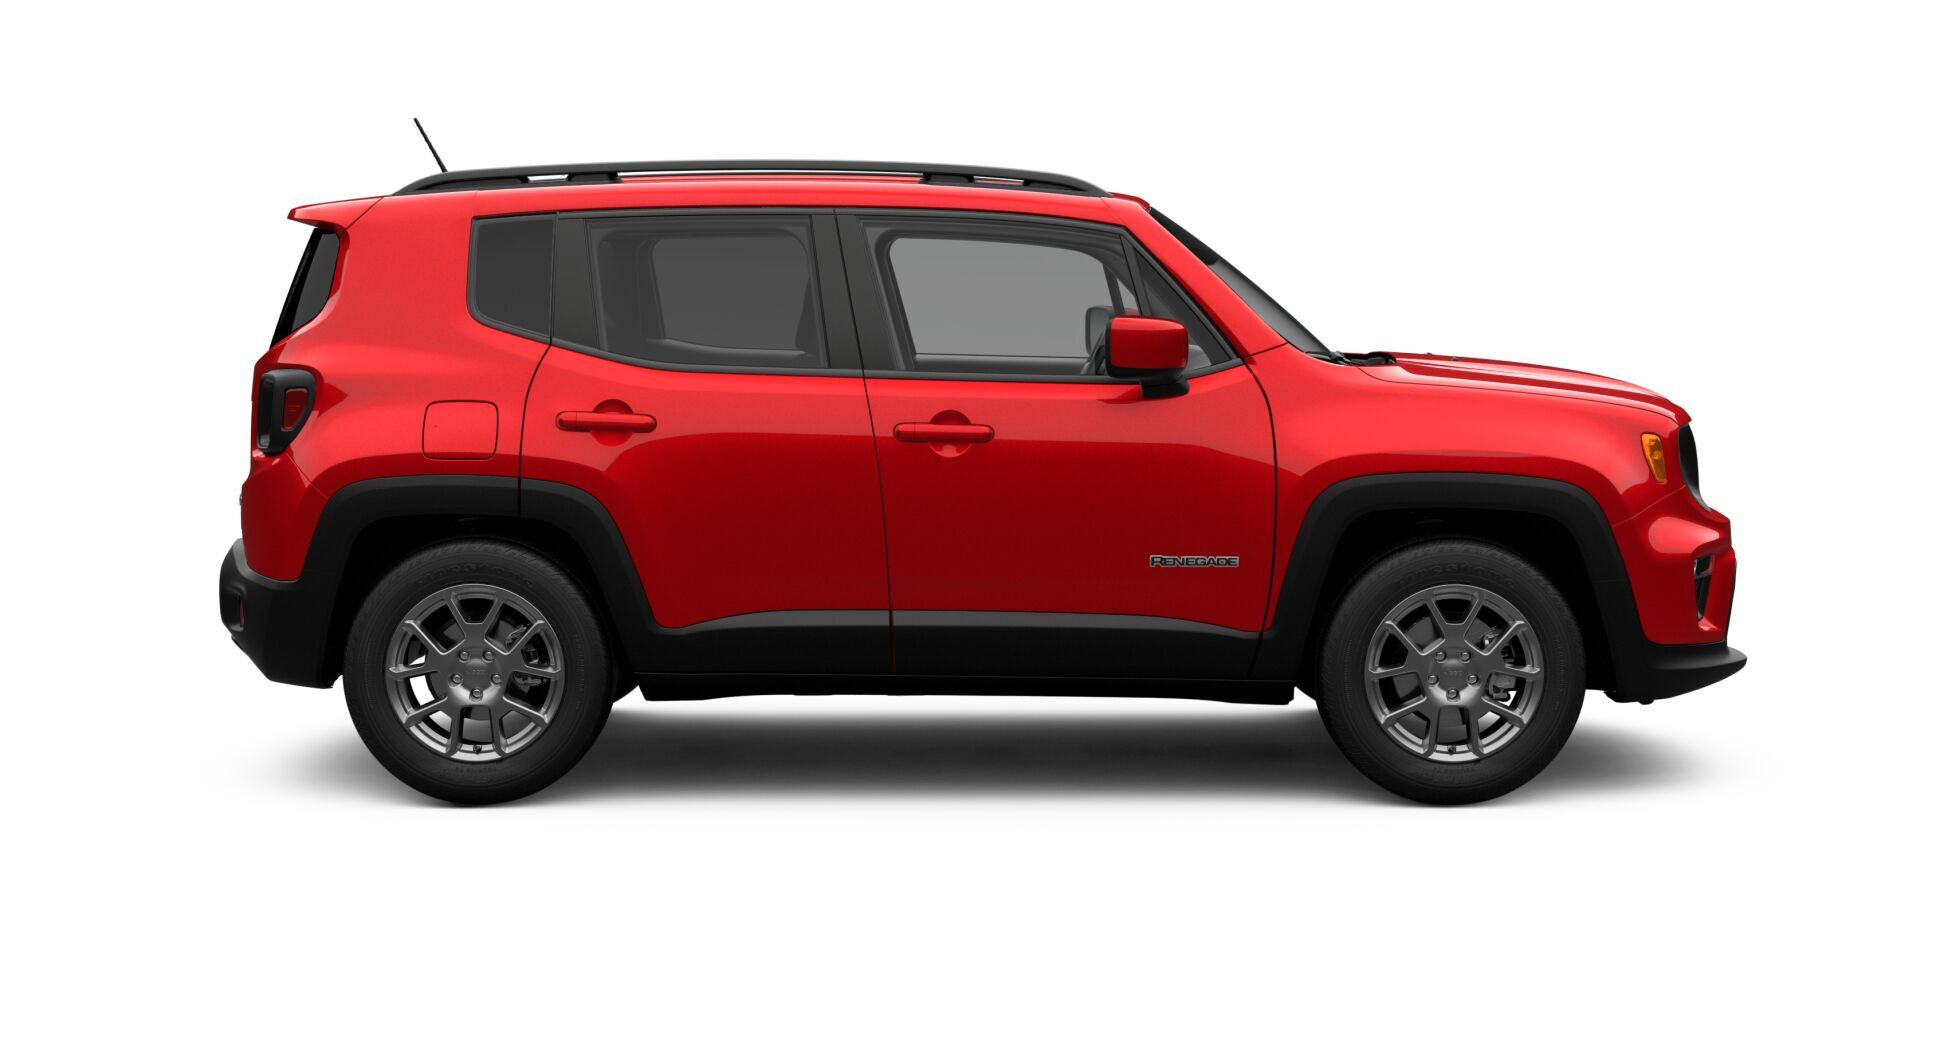 2019 Renegade Latitude